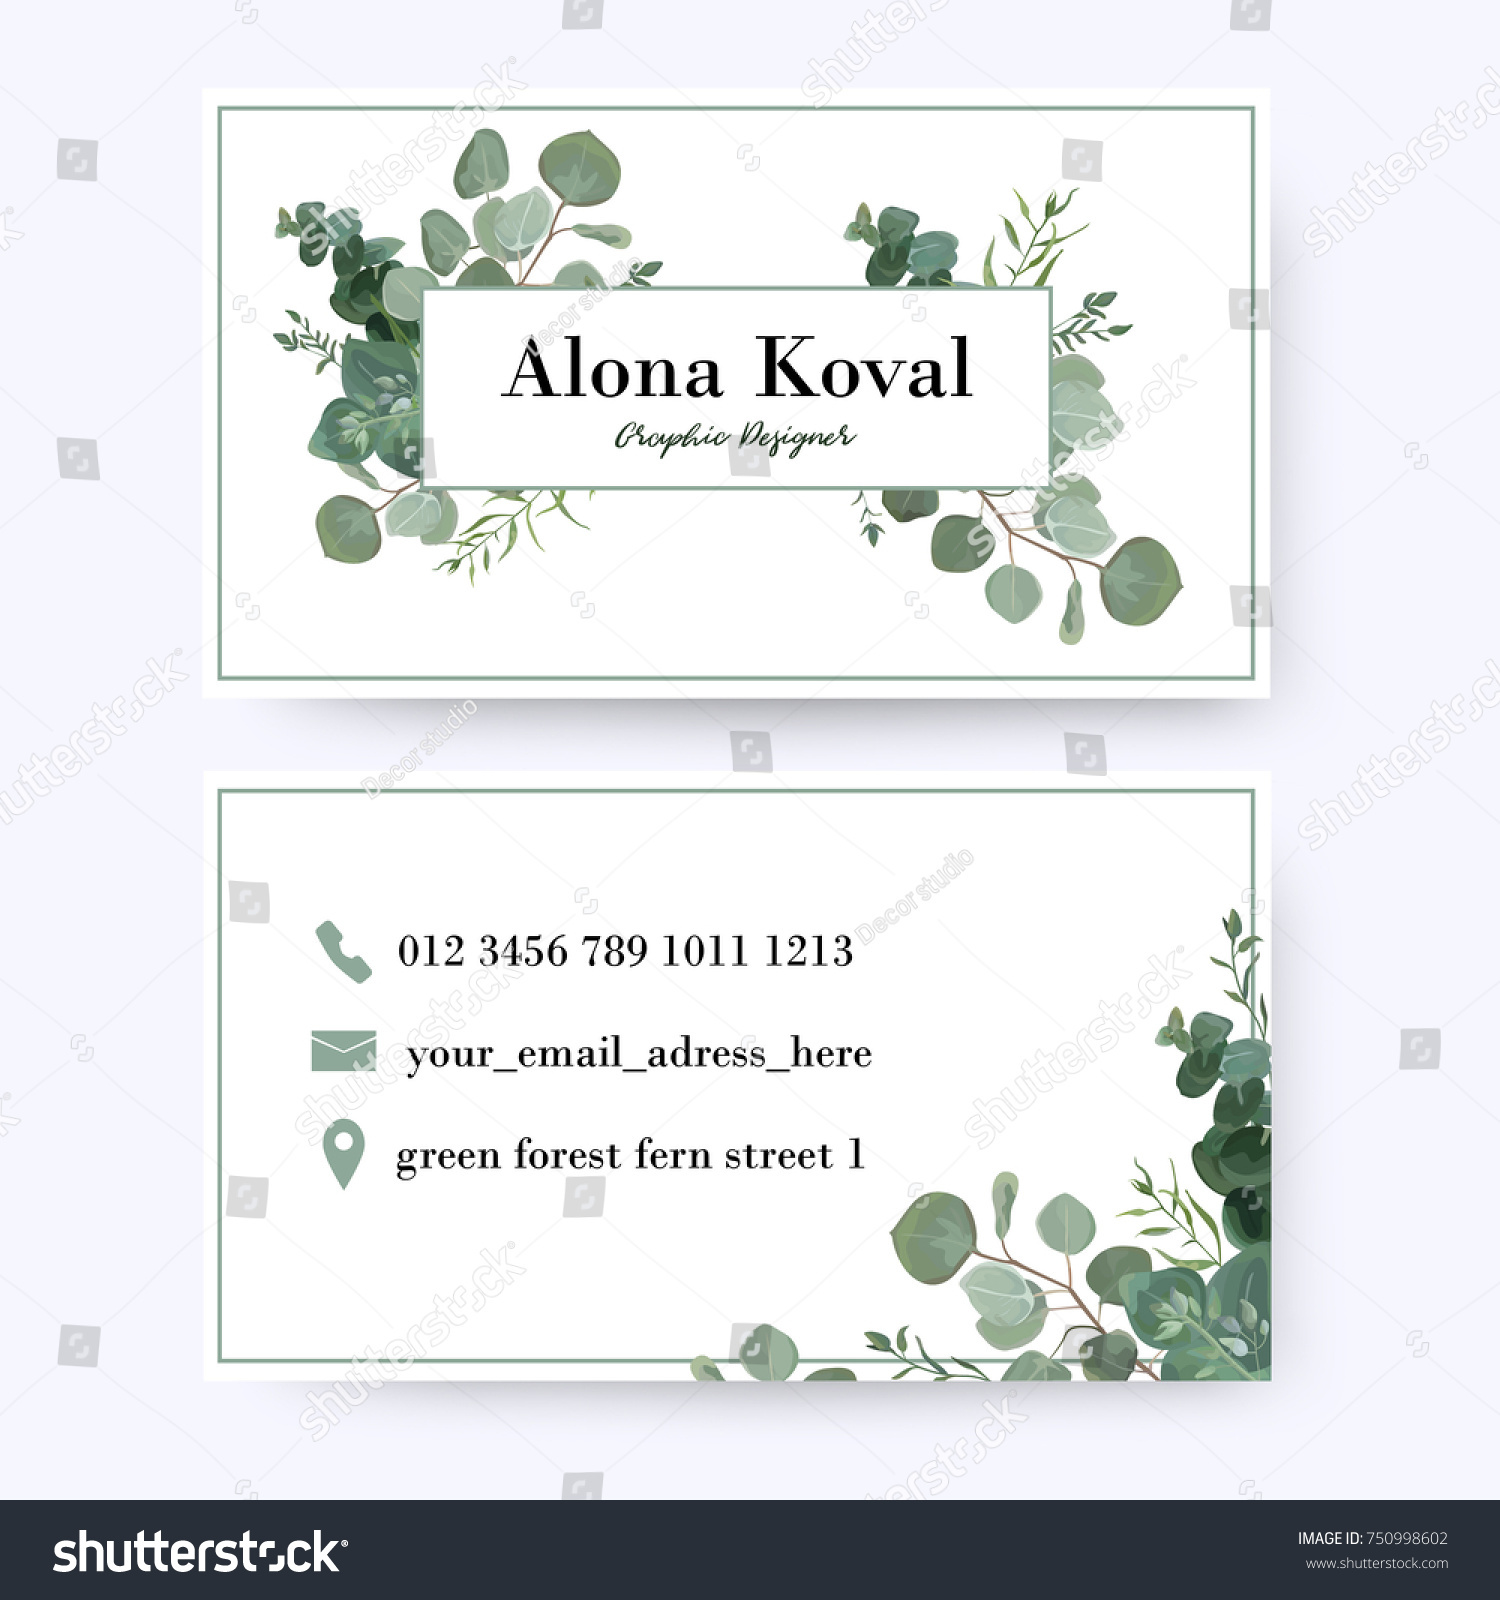 Floral Business Card Design Vintage Rustic Stock Vector 750998602 ...